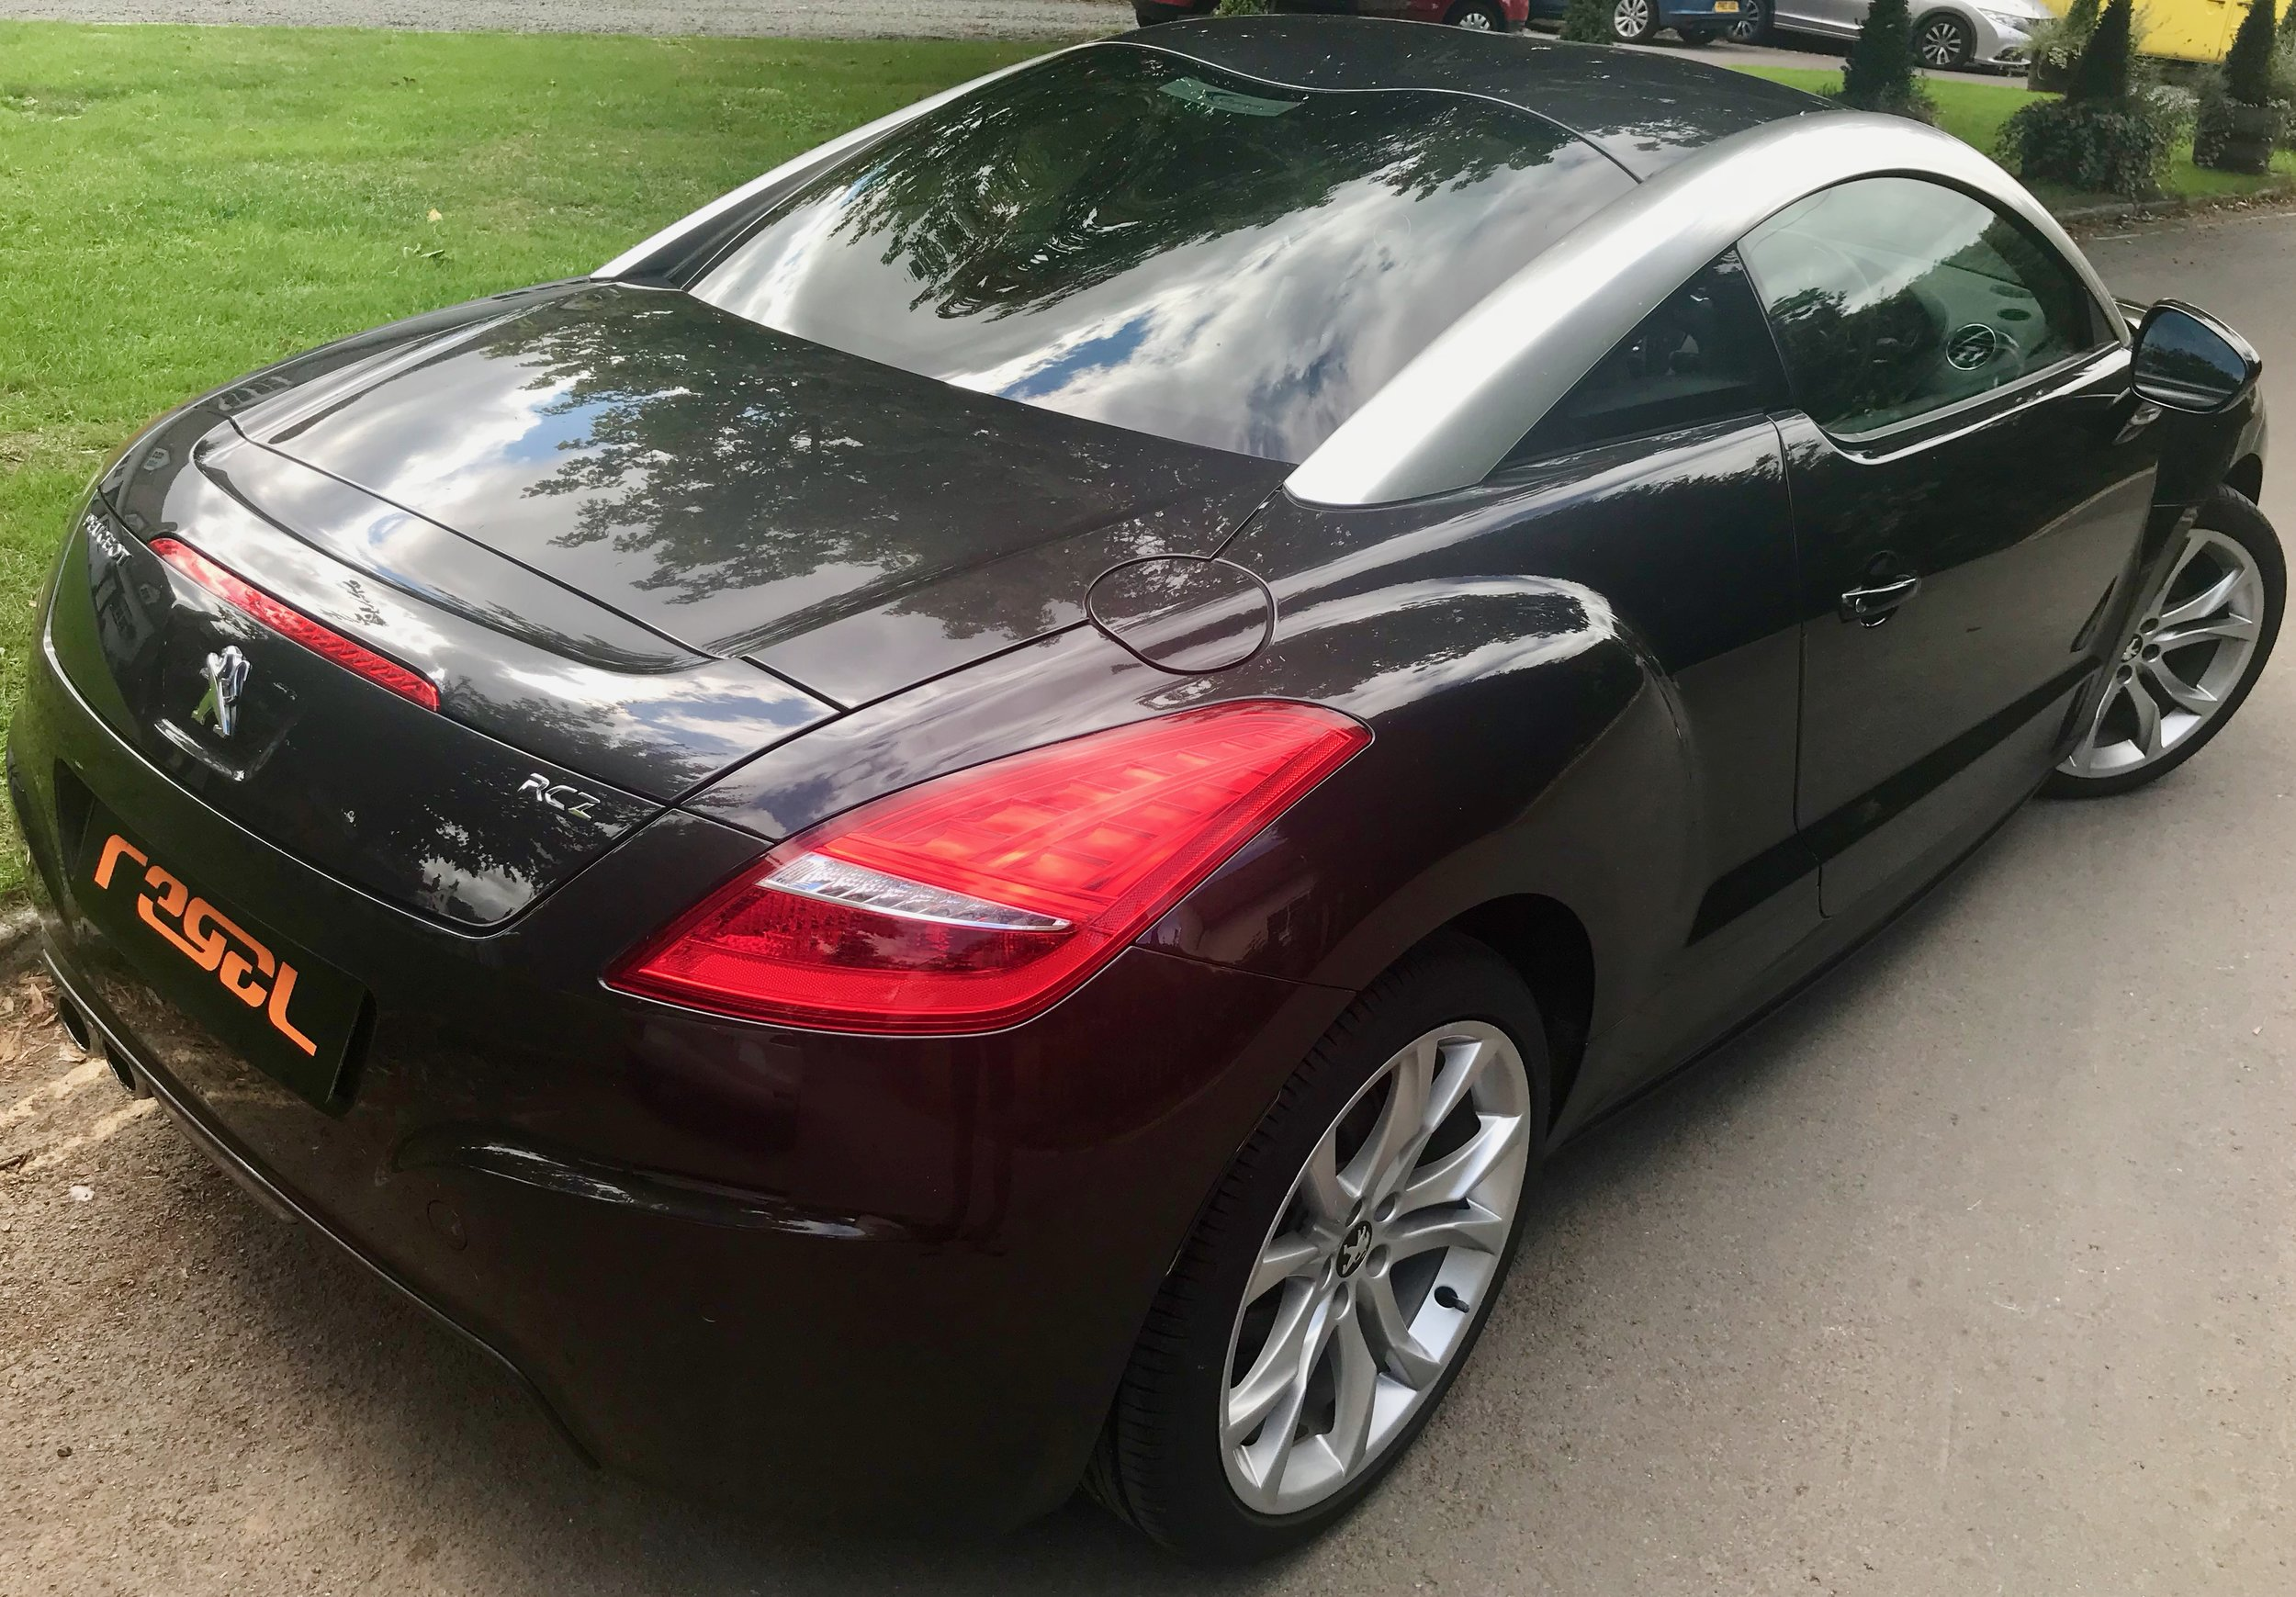 peugeot-rcz-gt-thp-used-car-forsale-regalmotion44.jpeg